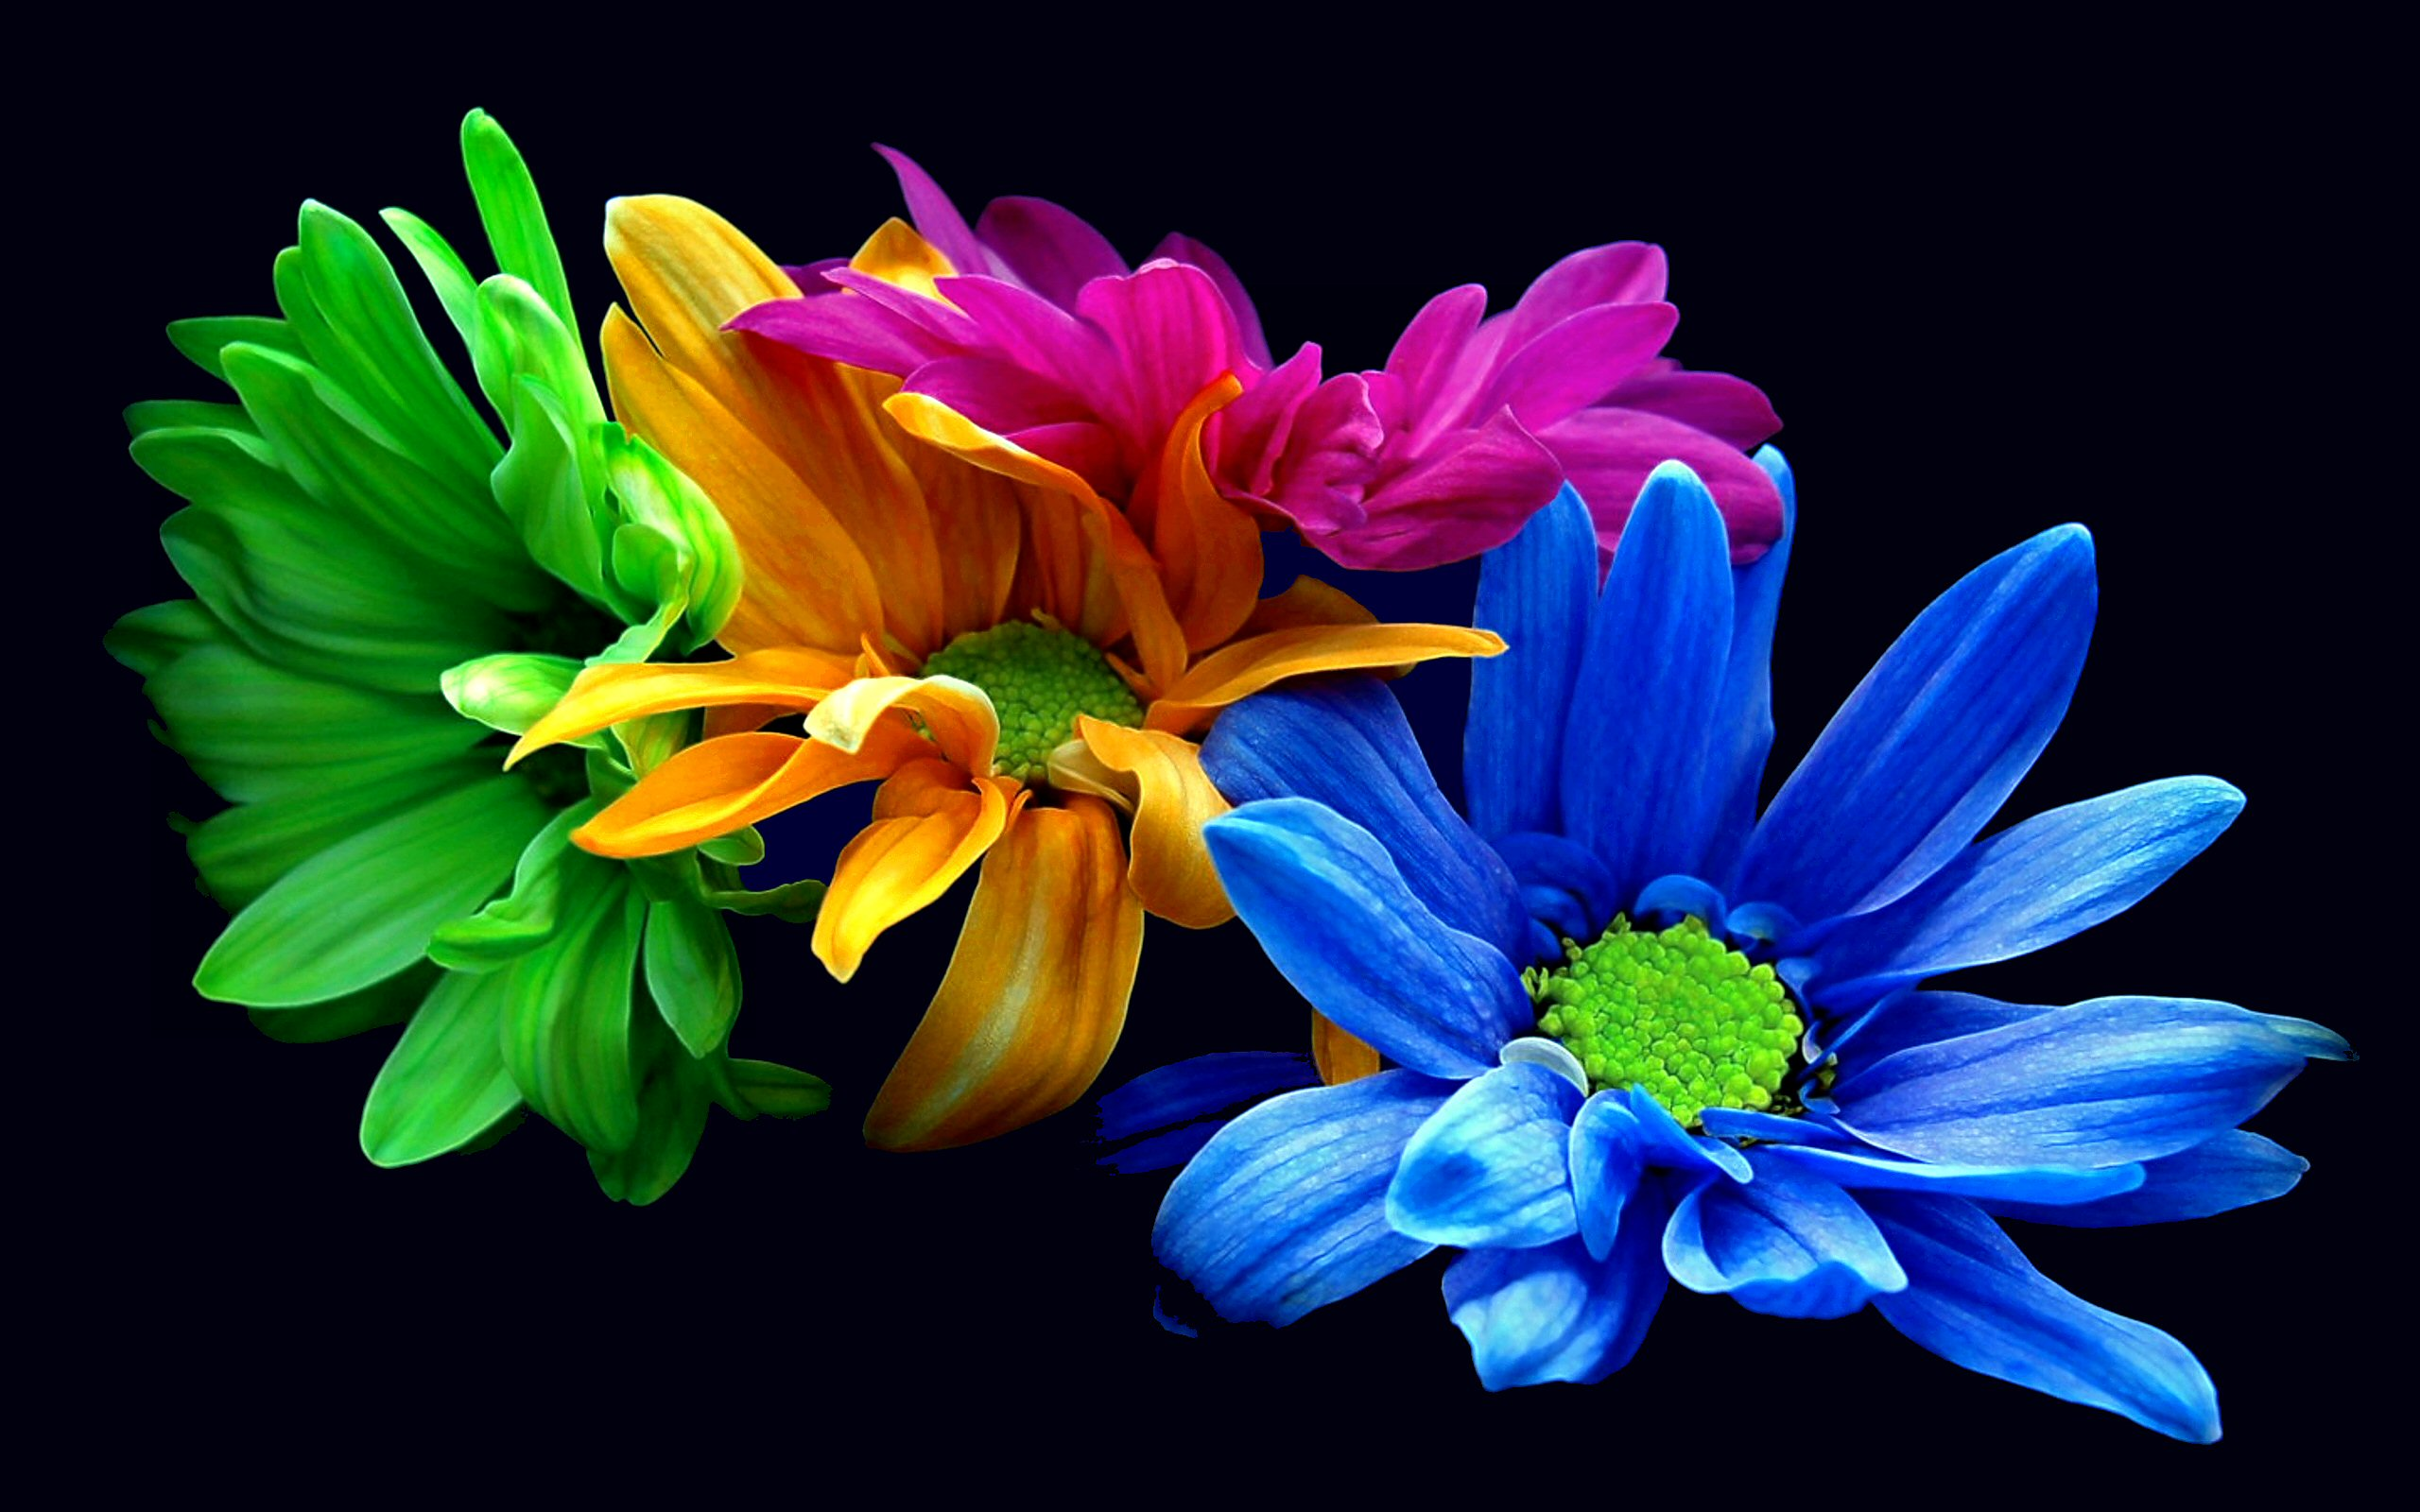 Colorful flowers wallpapers hd pixelstalk colorful flowers wallpapers hd voltagebd